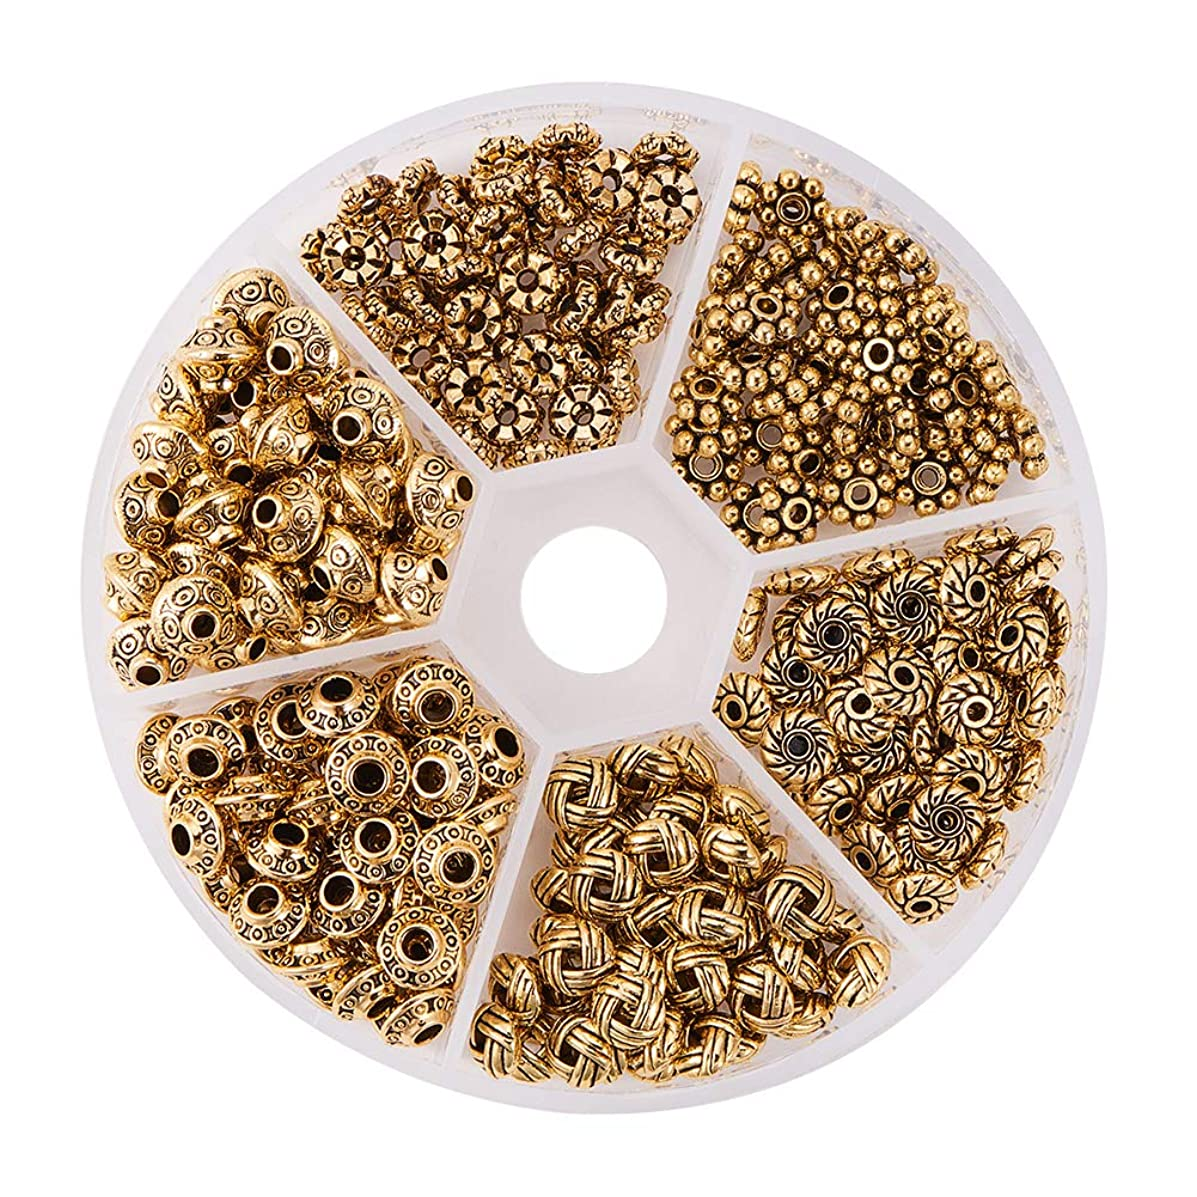 PH PandaHall 1Box About 300pcs Antique Golden Tibetan Style Spacer Beads Jewelry Findings Accessories for Bracelet Necklace Jewelry Making (5.5~6.5x2~7.5mm, Hole: 1~2mm)